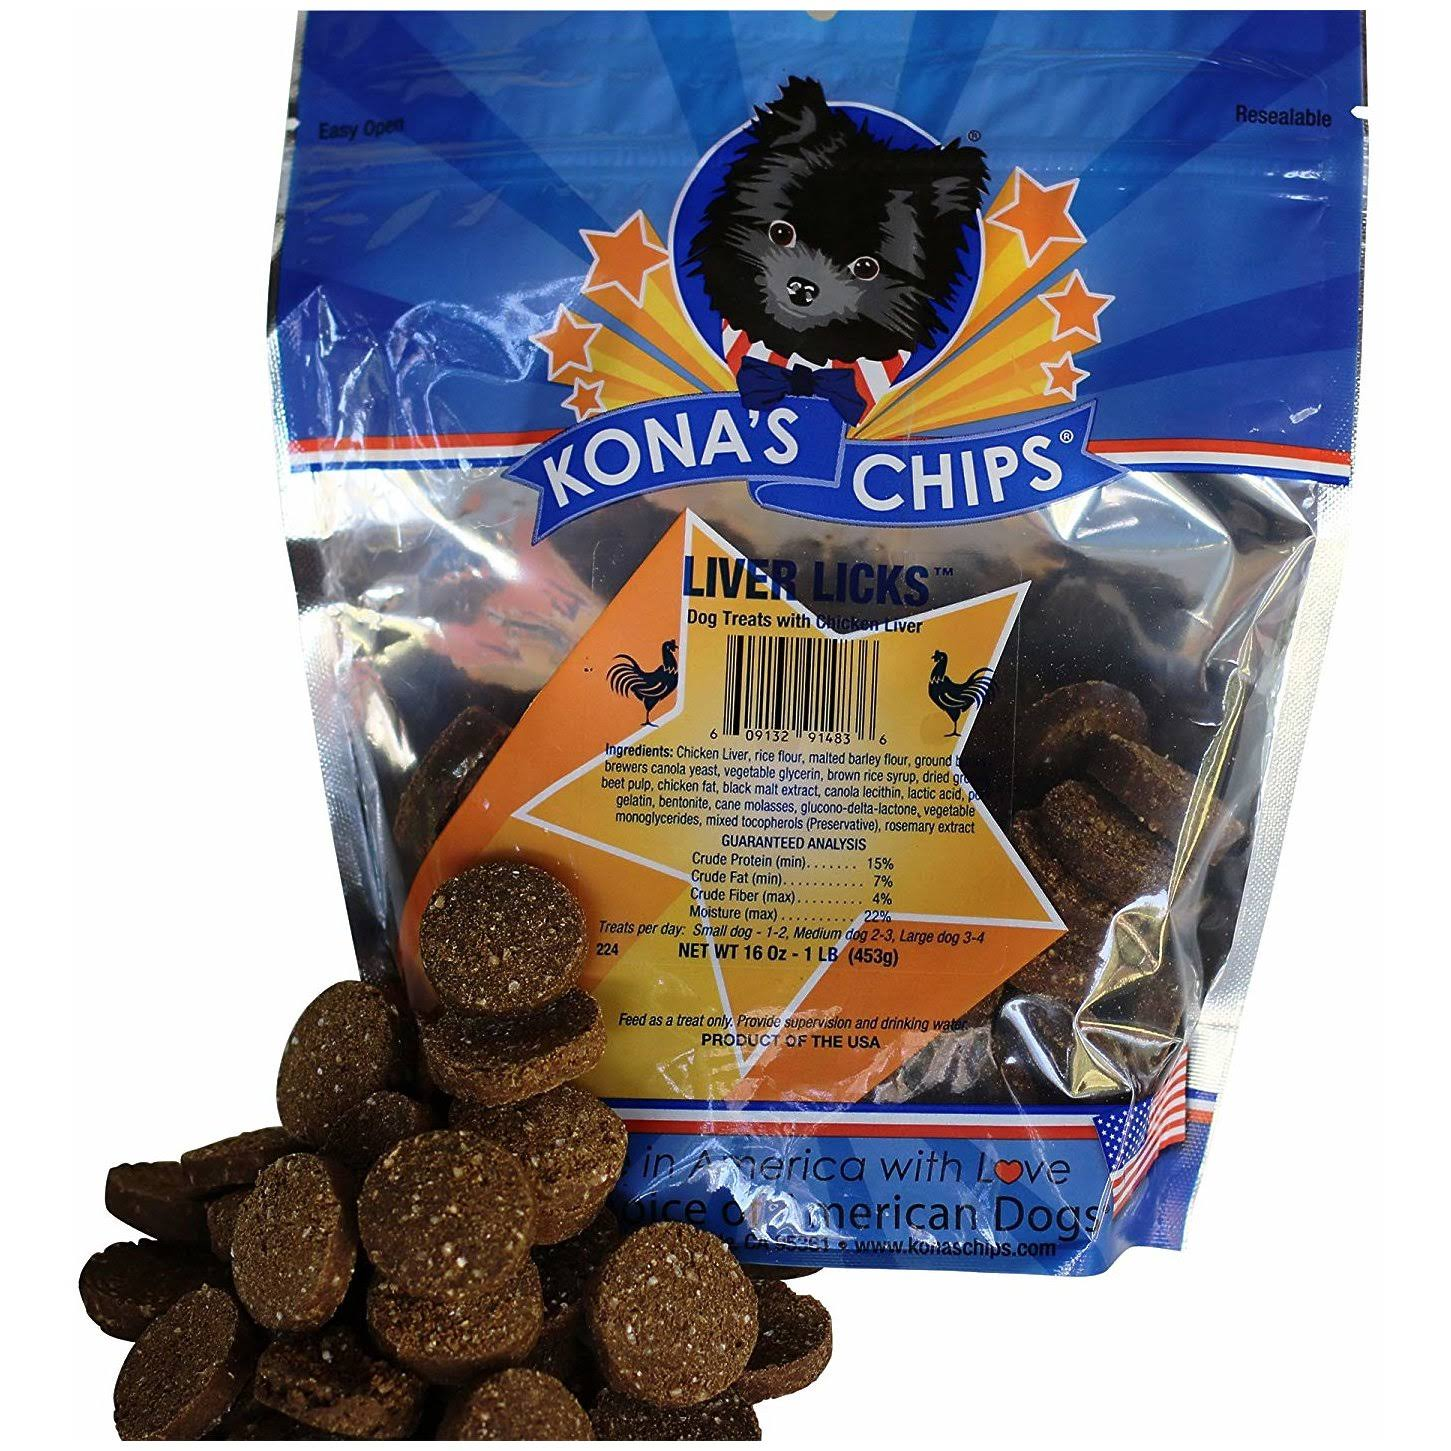 Kona's Chips Liver Licks Dog Treat Chews - Liver, 1lb